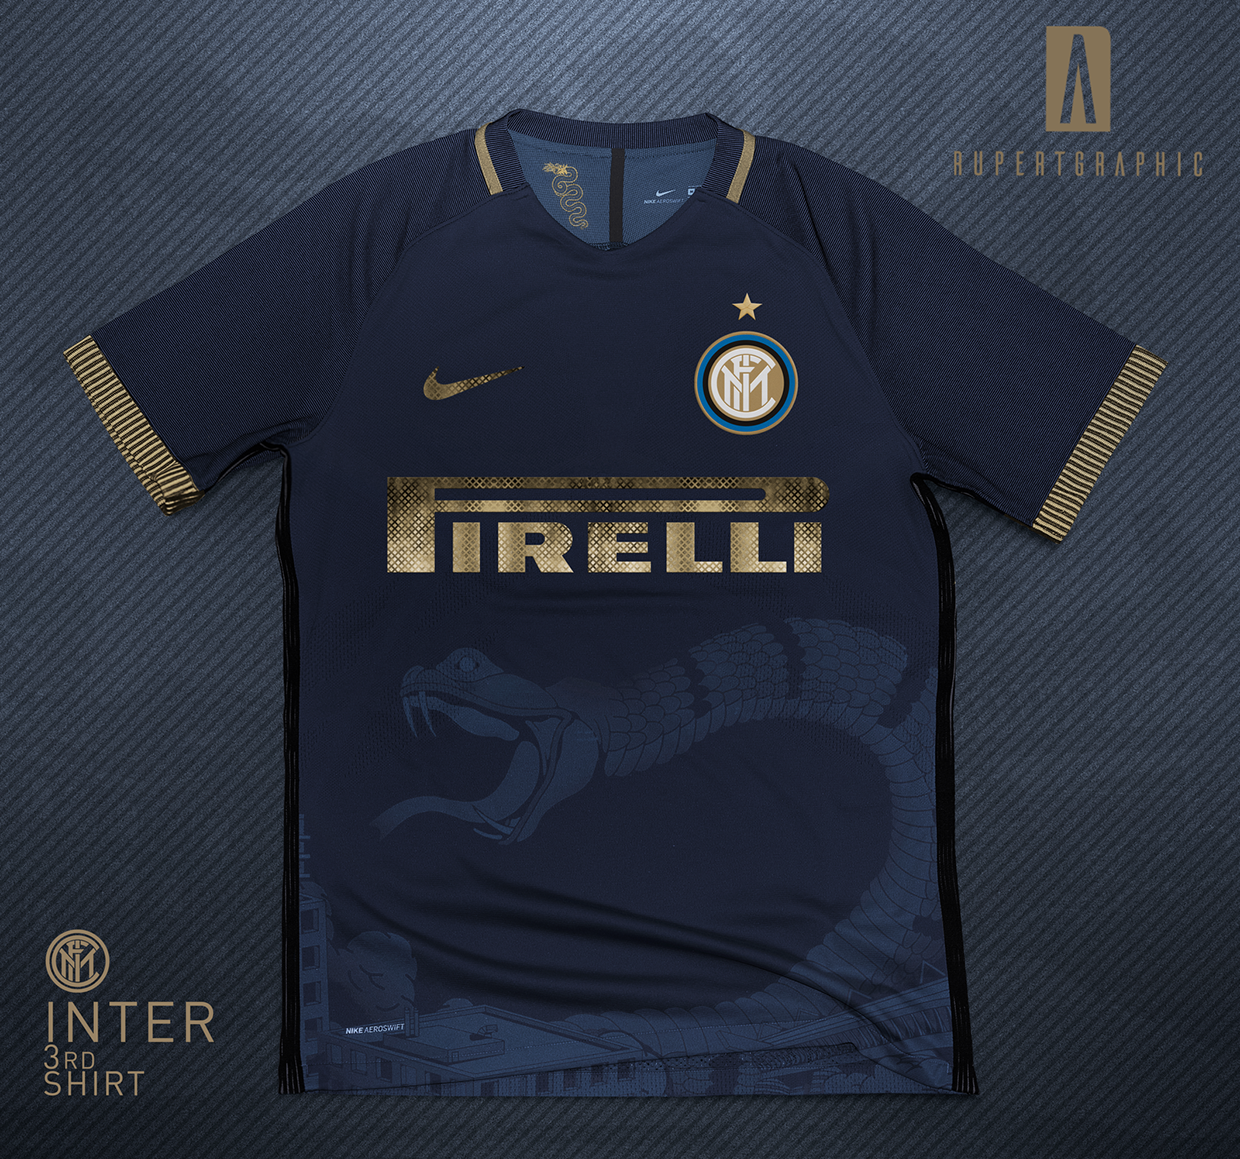 a72bf673eabe2 Italian graphic designer Rupertgraphic has created an amazing Nike concept  shirt for Inter Milan.